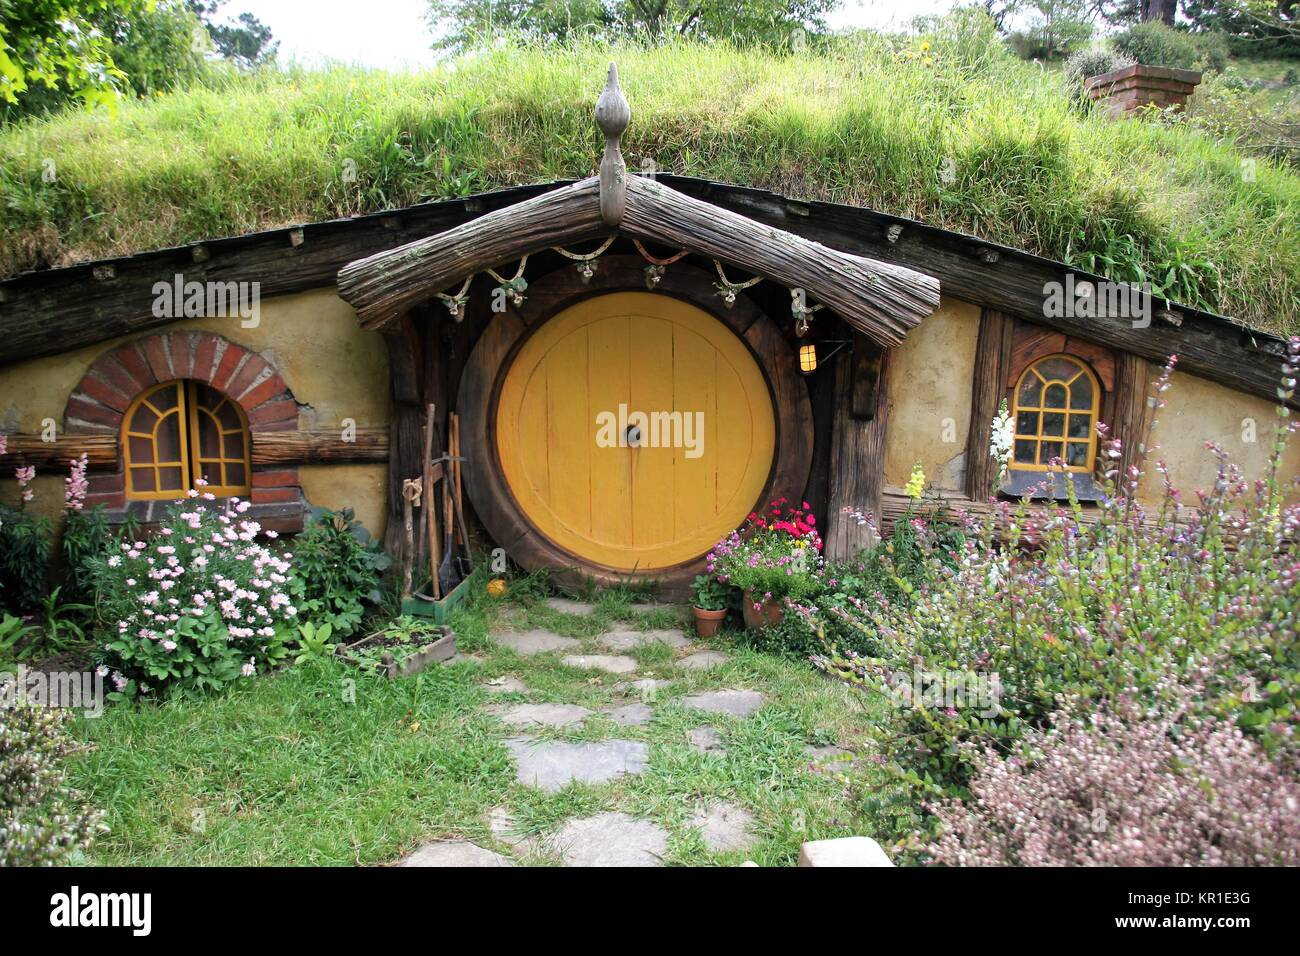 hobbit haus in hobbiton stockfoto bild 169063428 alamy. Black Bedroom Furniture Sets. Home Design Ideas